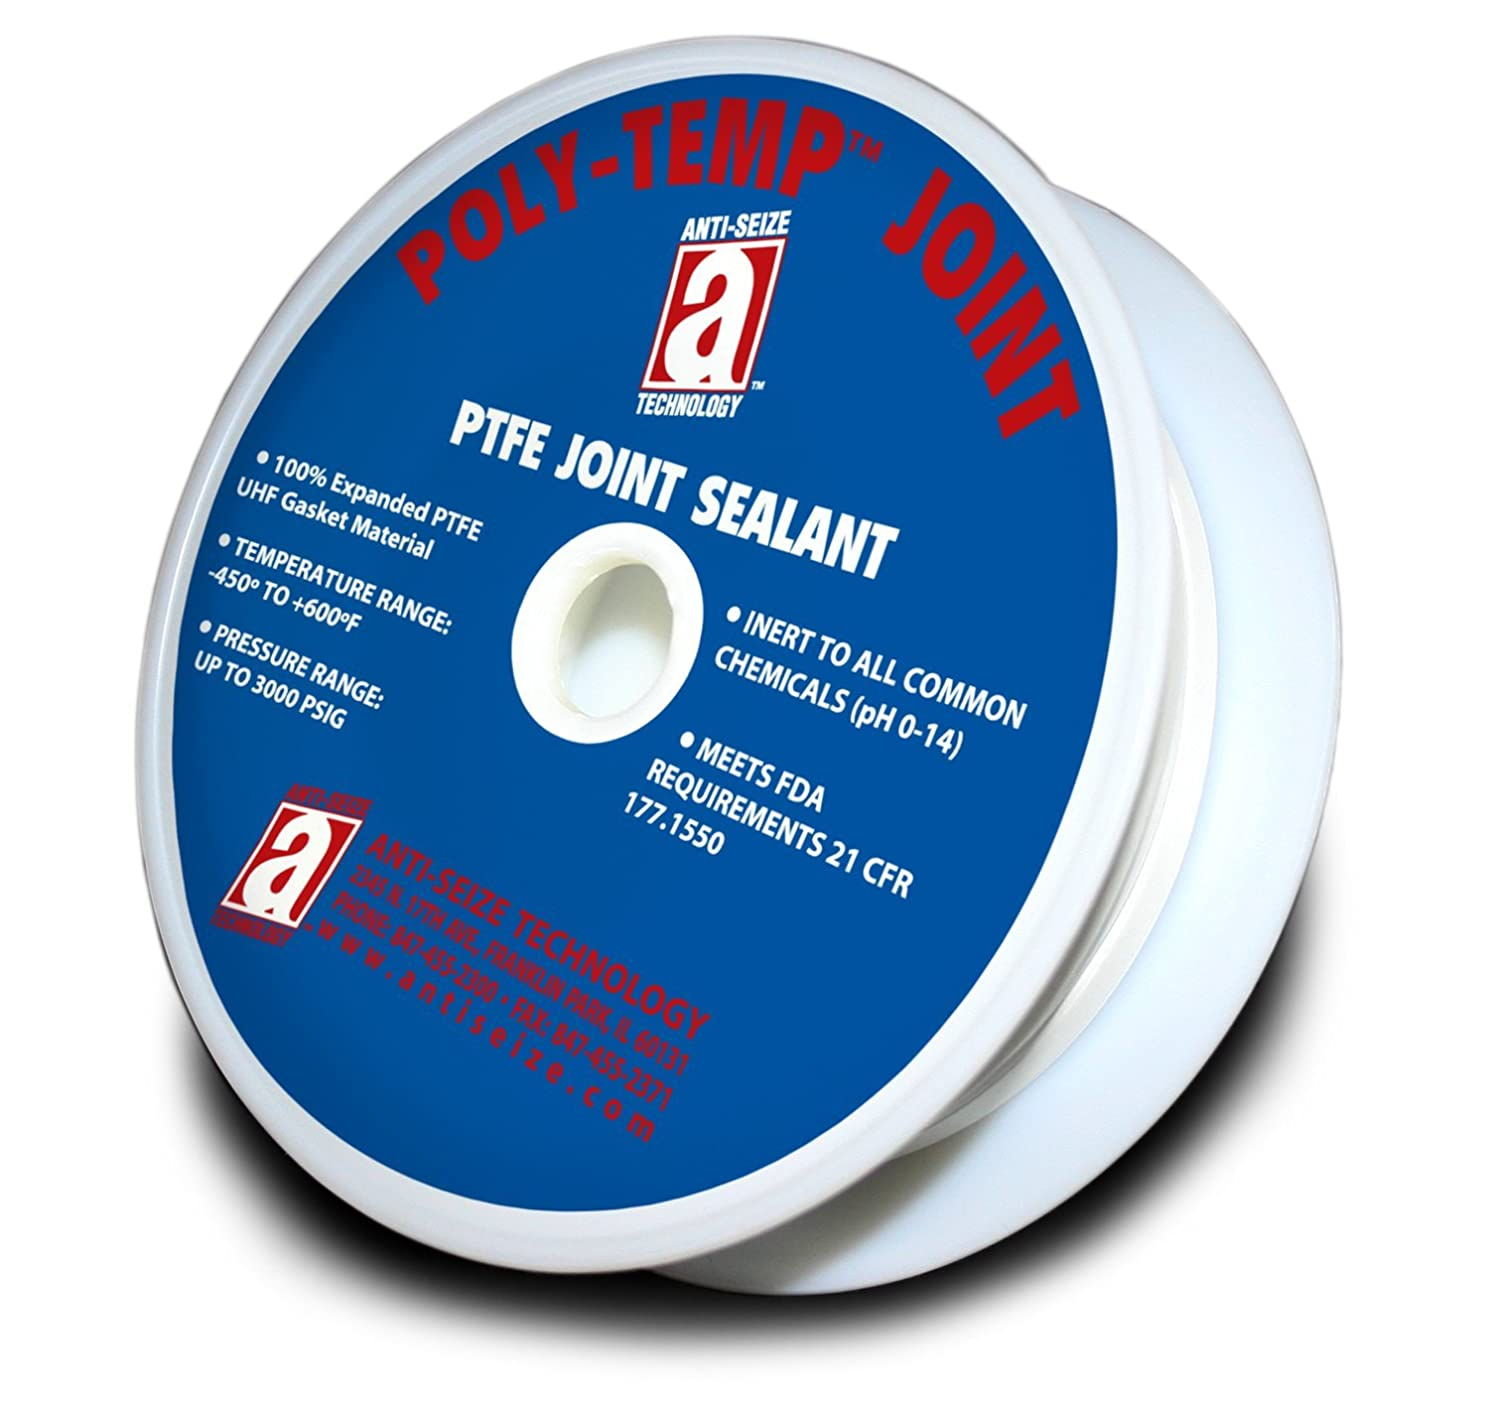 POLY-TEMP 28005 White Joint Sealant 100% PTFE Gasket Material Expanded UHF Adhesive Tape, 3/16